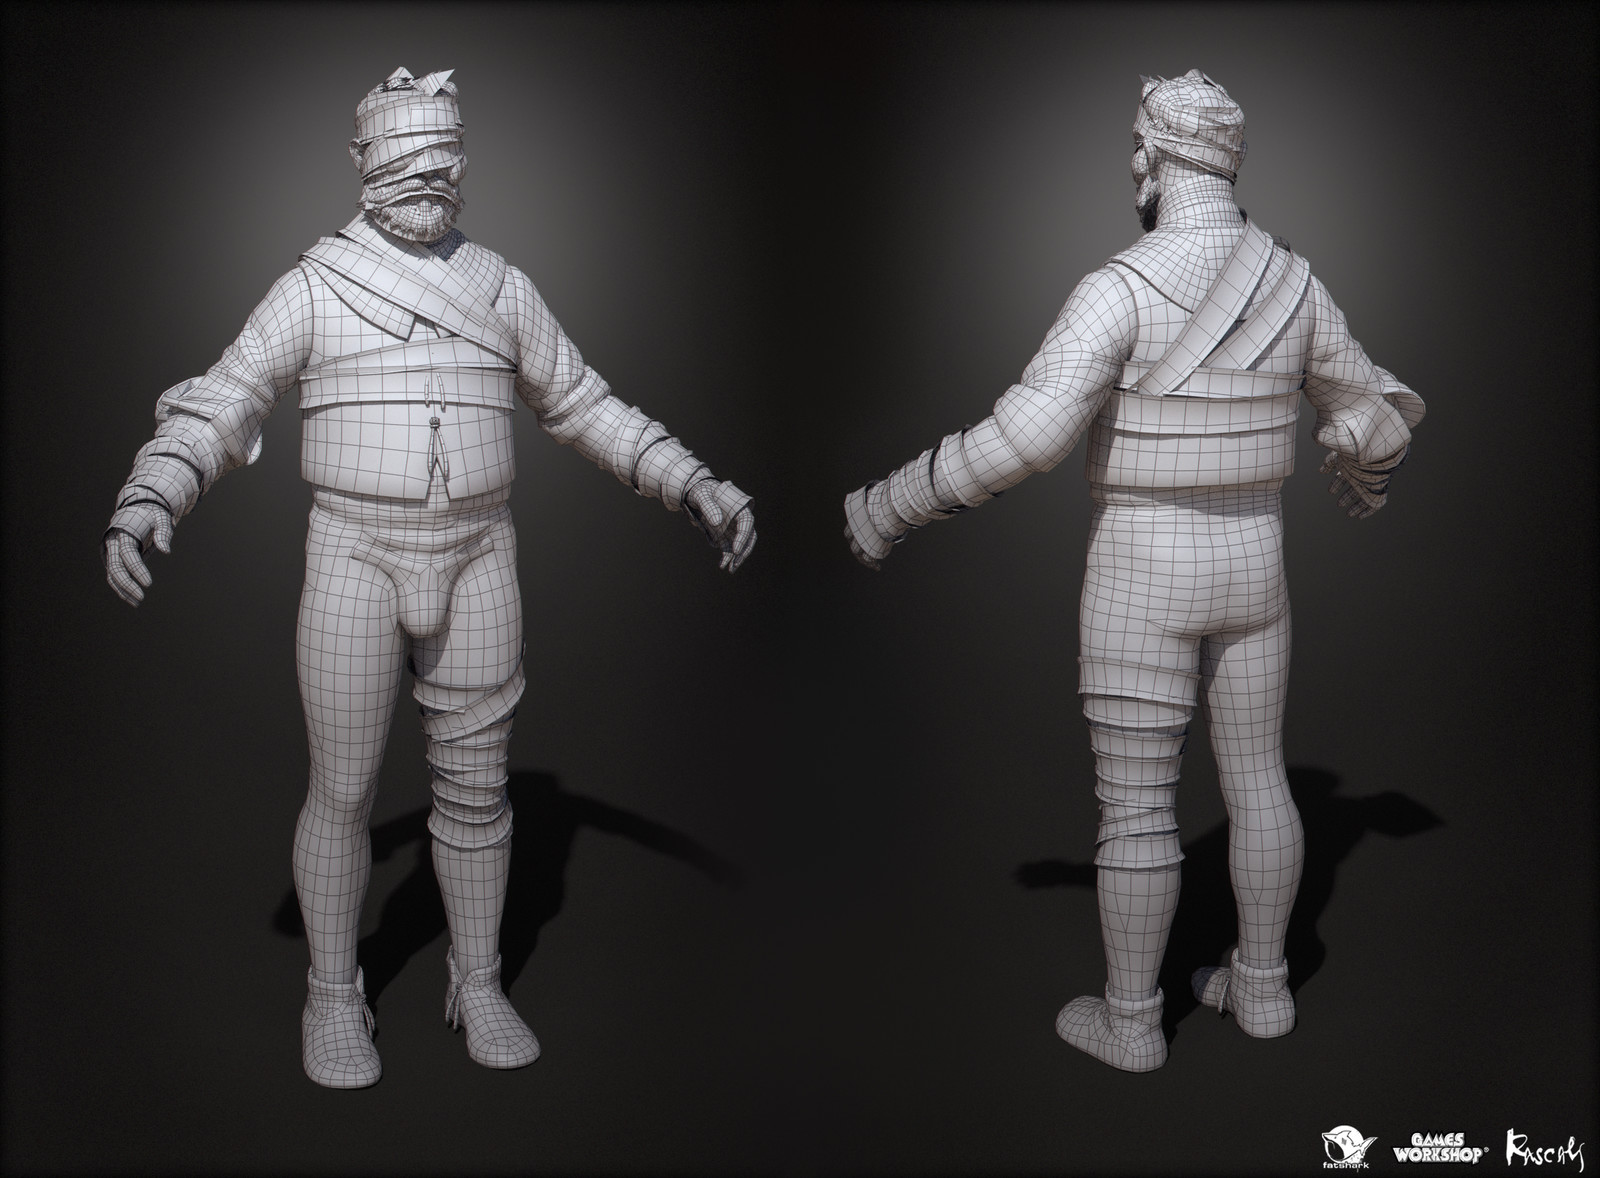 Prisoner is made of 19K polys, about a half of player characters' polybudget, and 4K PBR textures